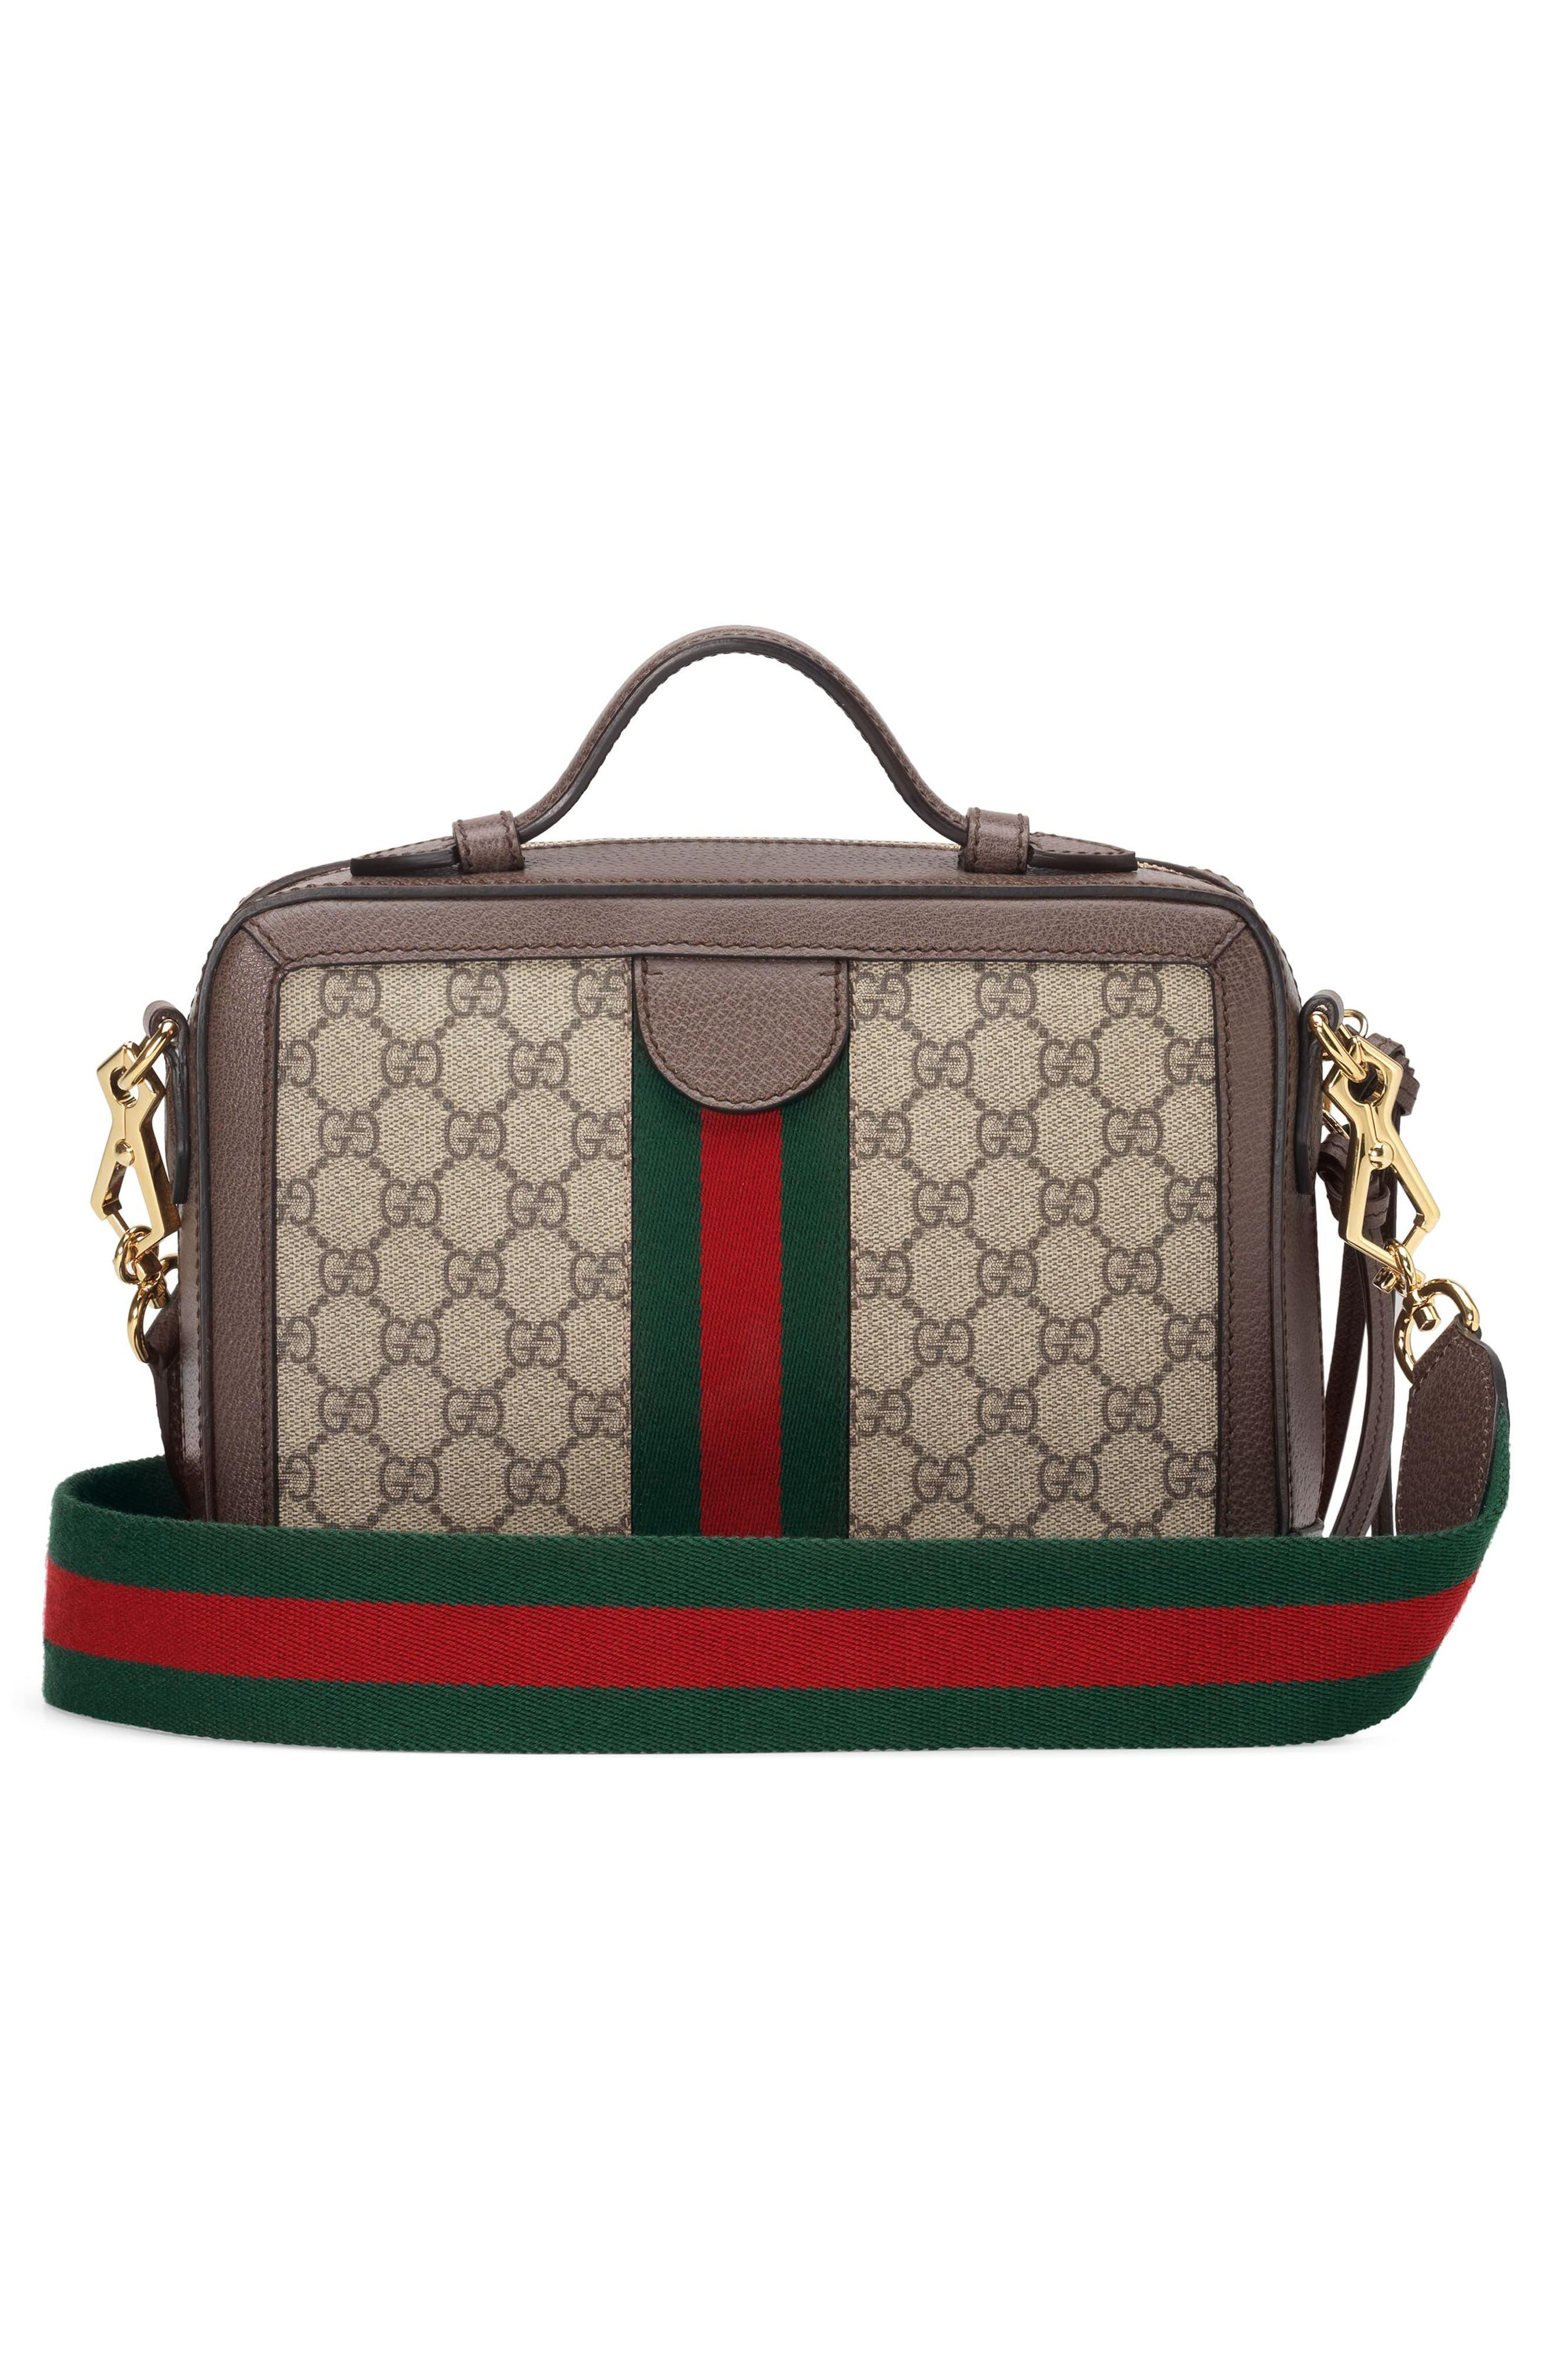 5d6081886 Gucci Small Ophidia Gg Supreme Canvas Shoulder Bag - in Brown - Lyst